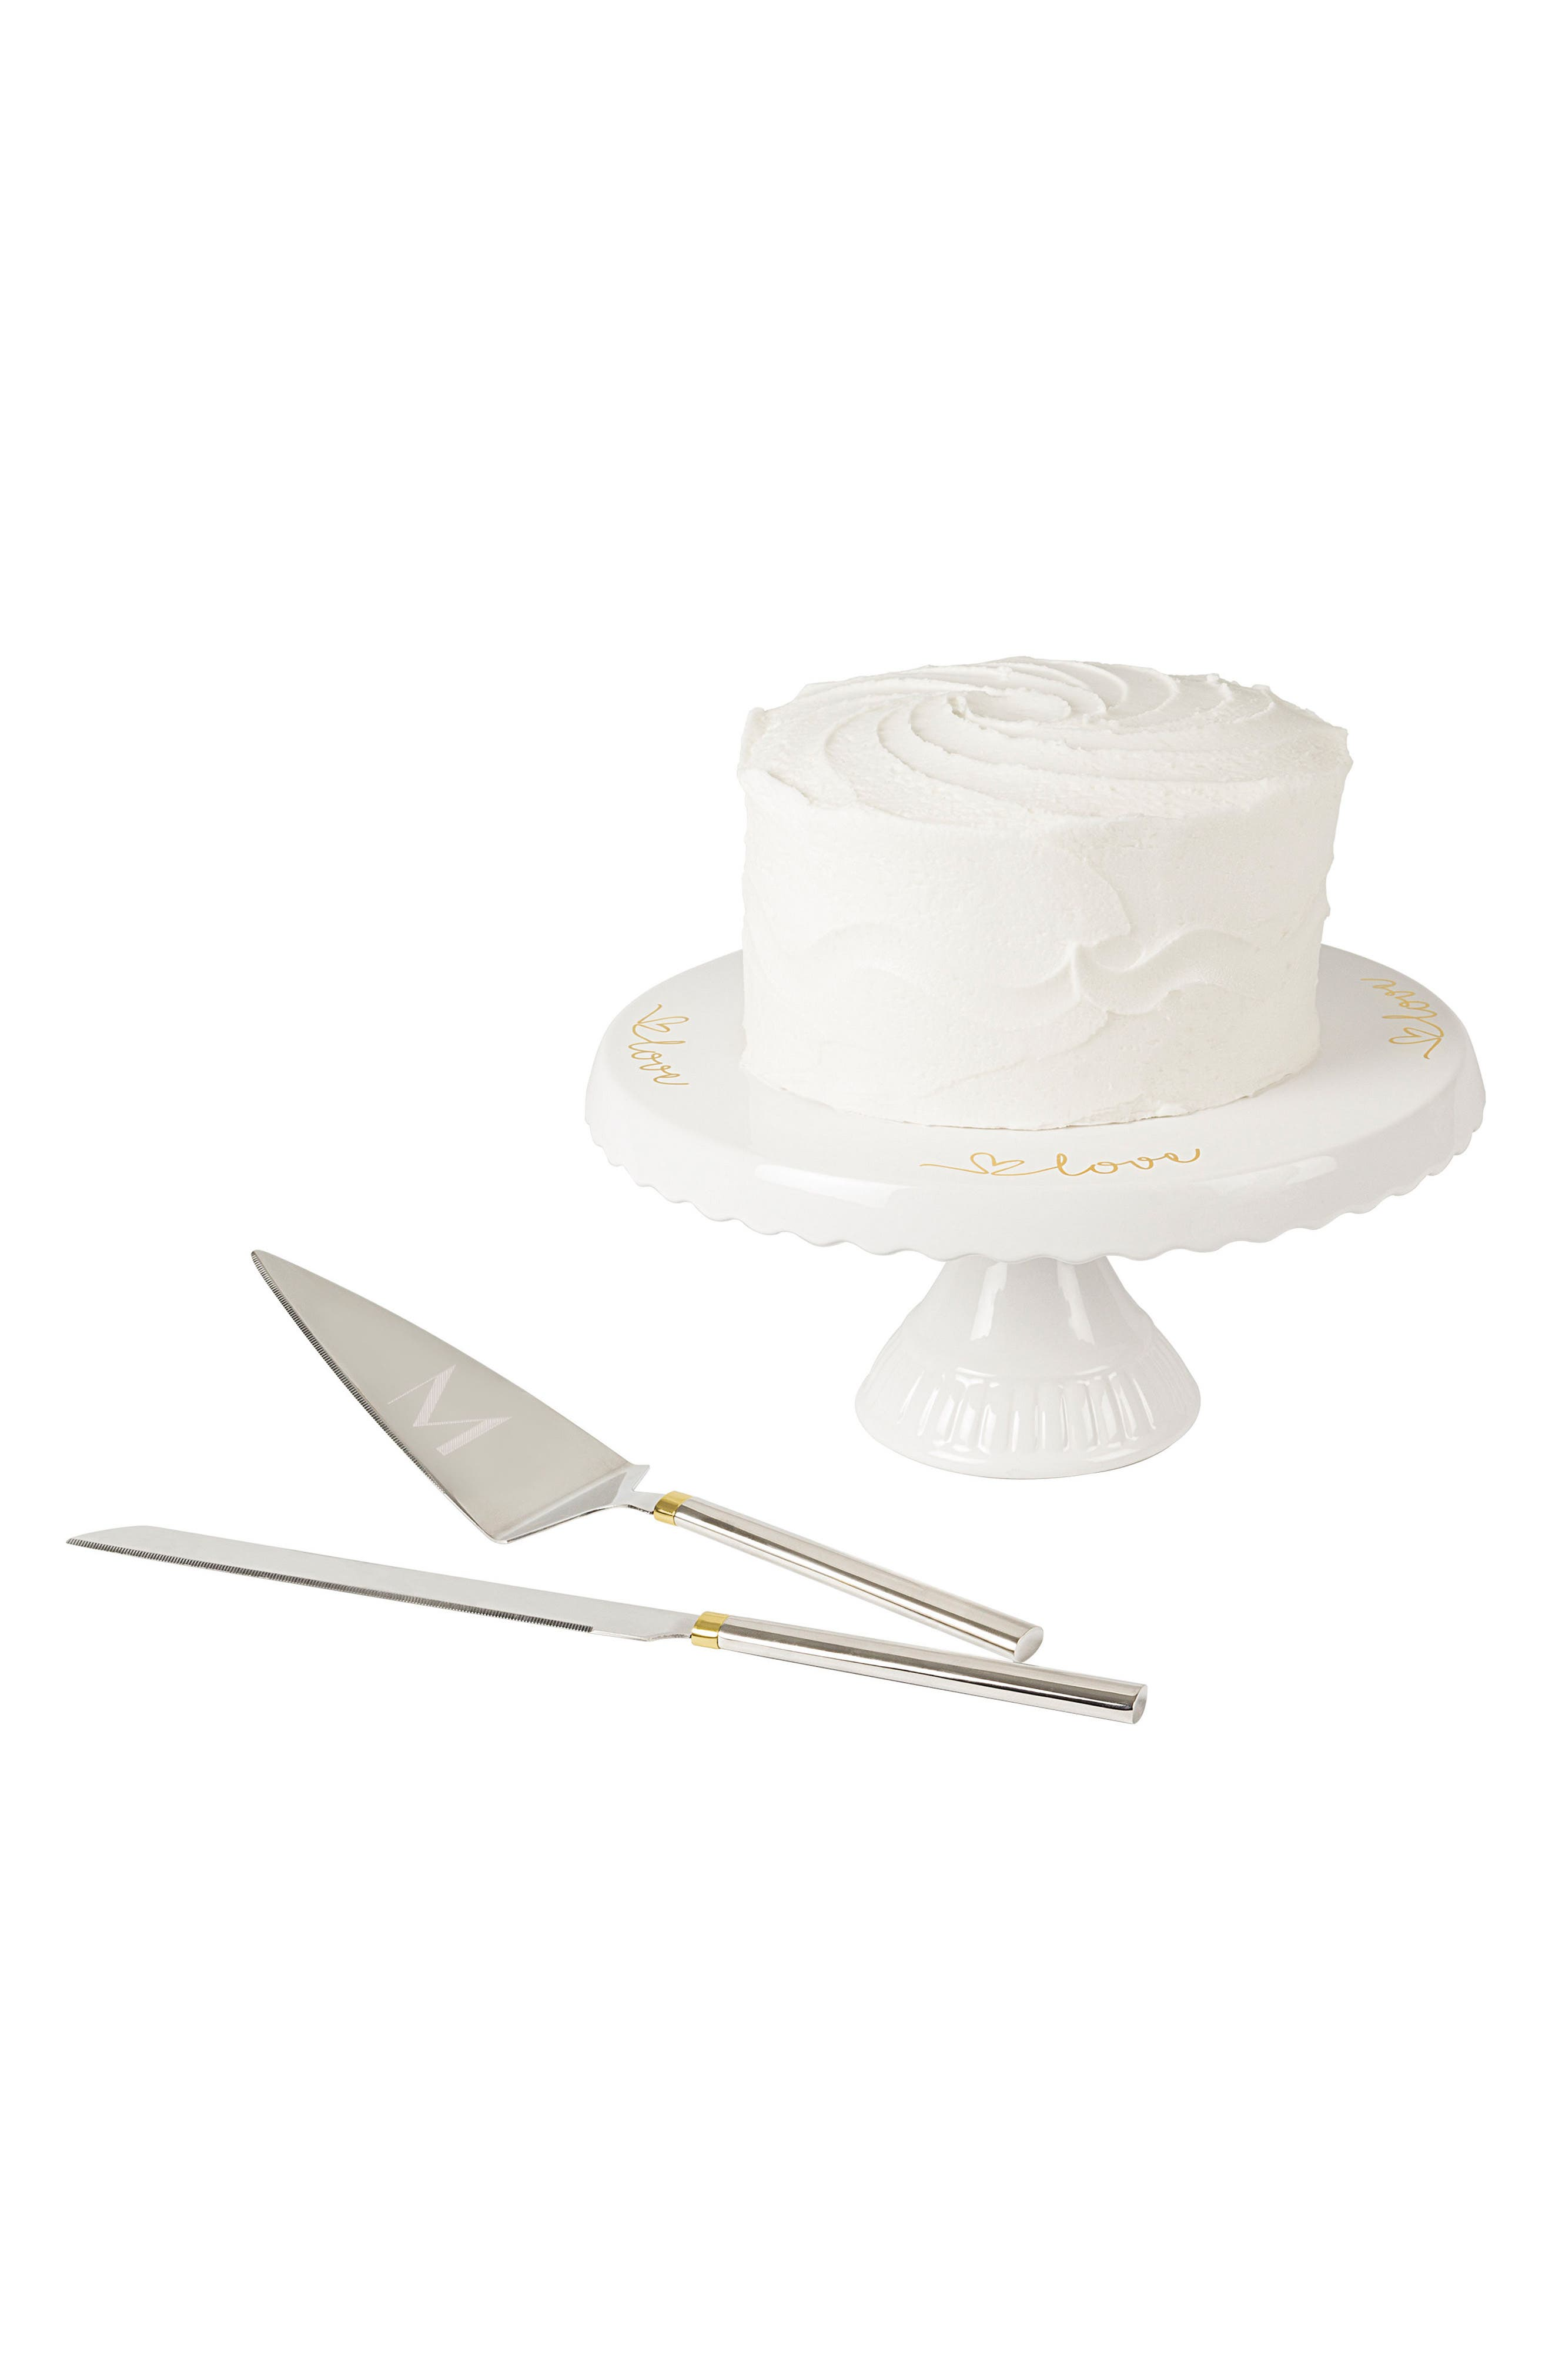 Love Monogram Cake Stand & Server Set,                             Main thumbnail 14, color,